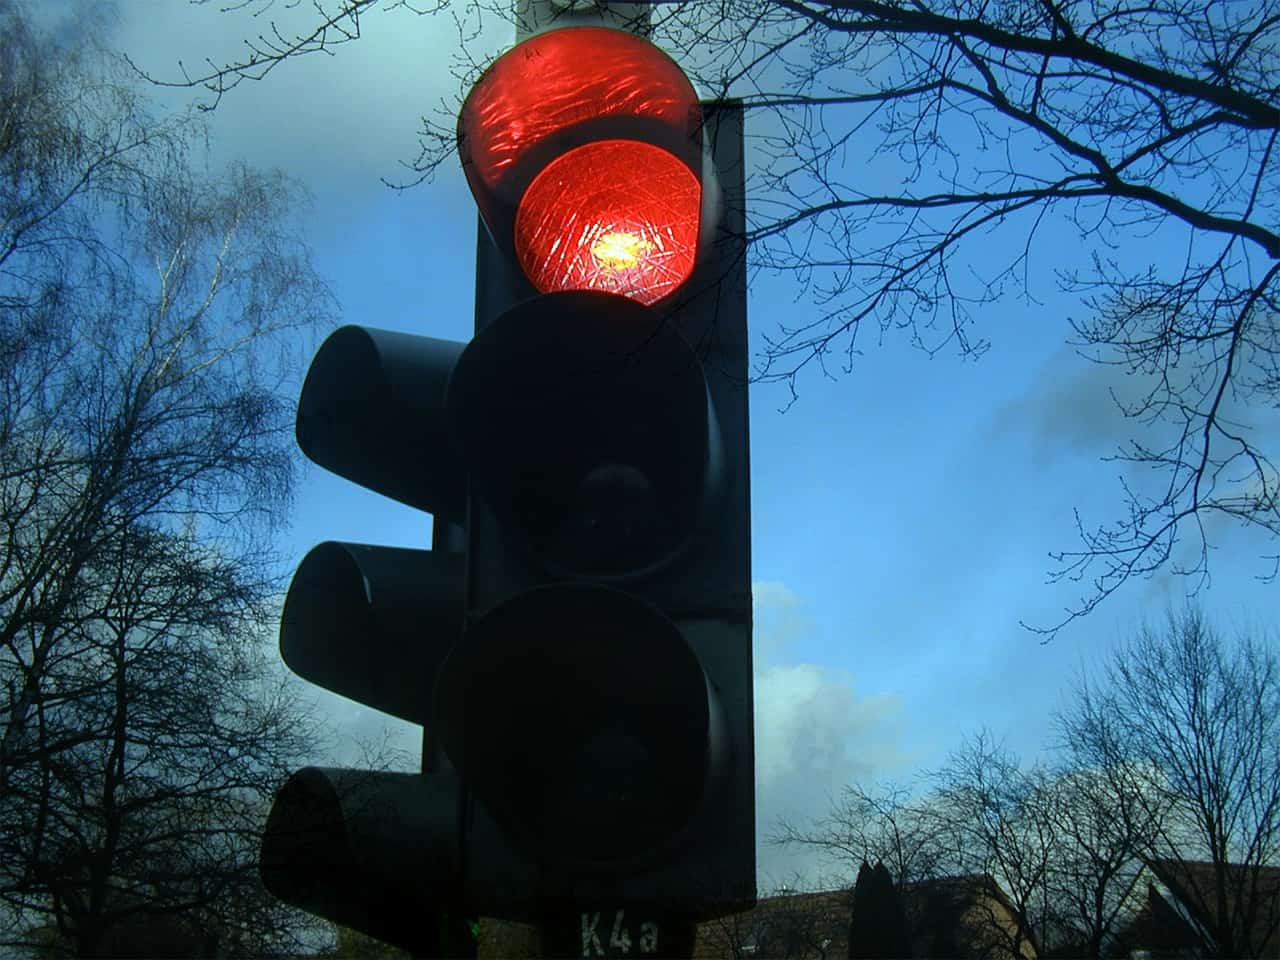 Red stoplight - Mindful driving